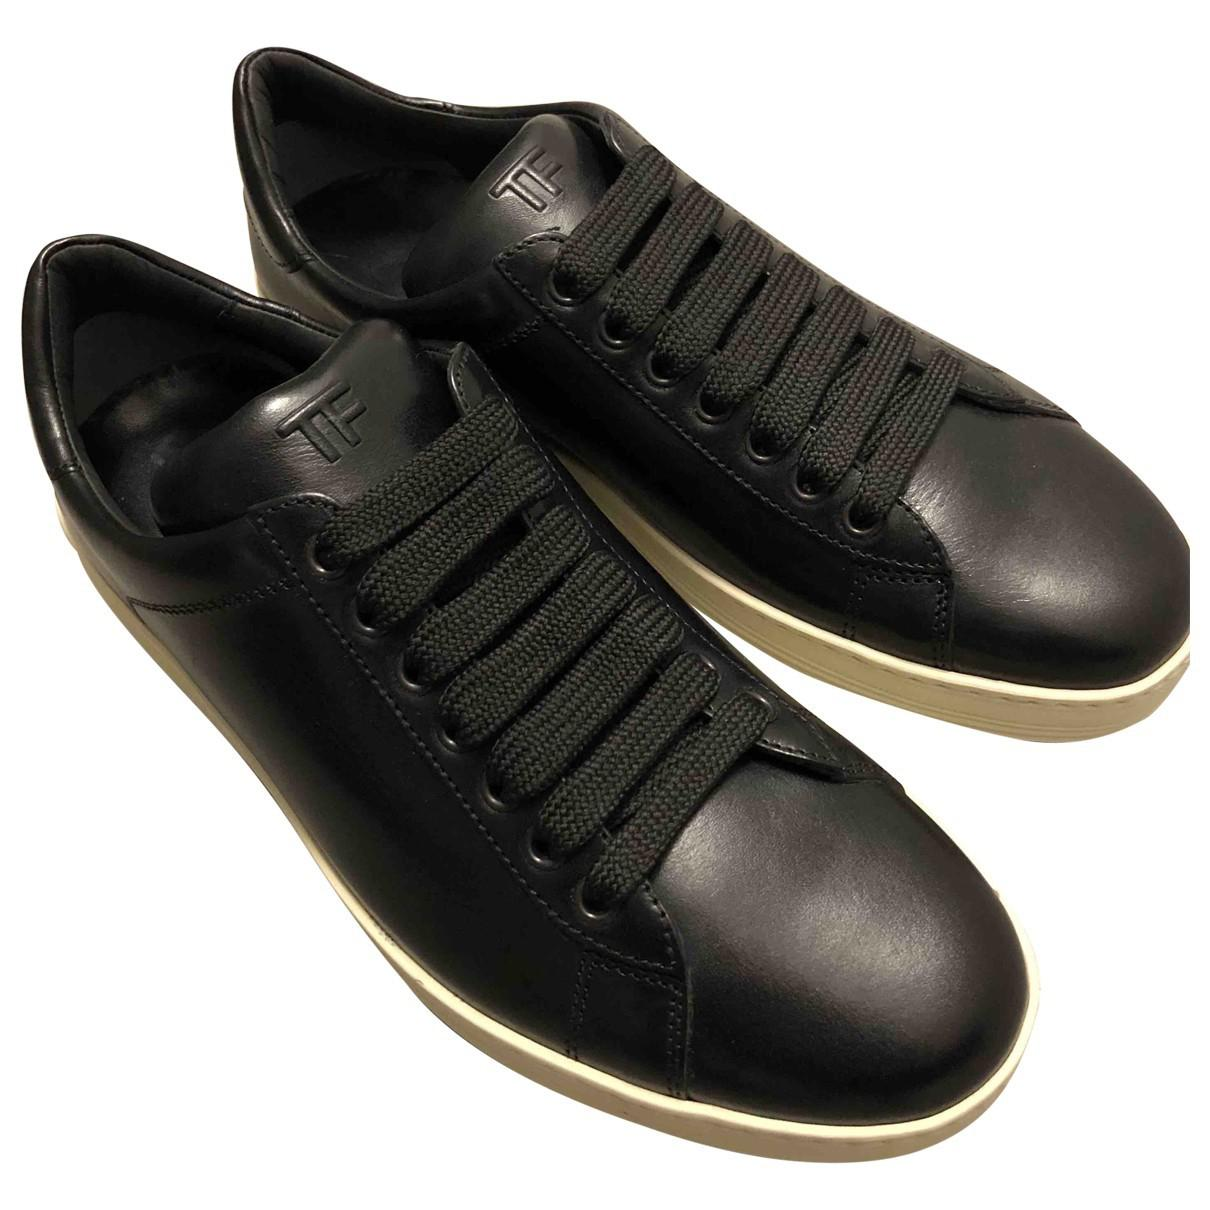 Tom Ford Leather Low Trainers in Black